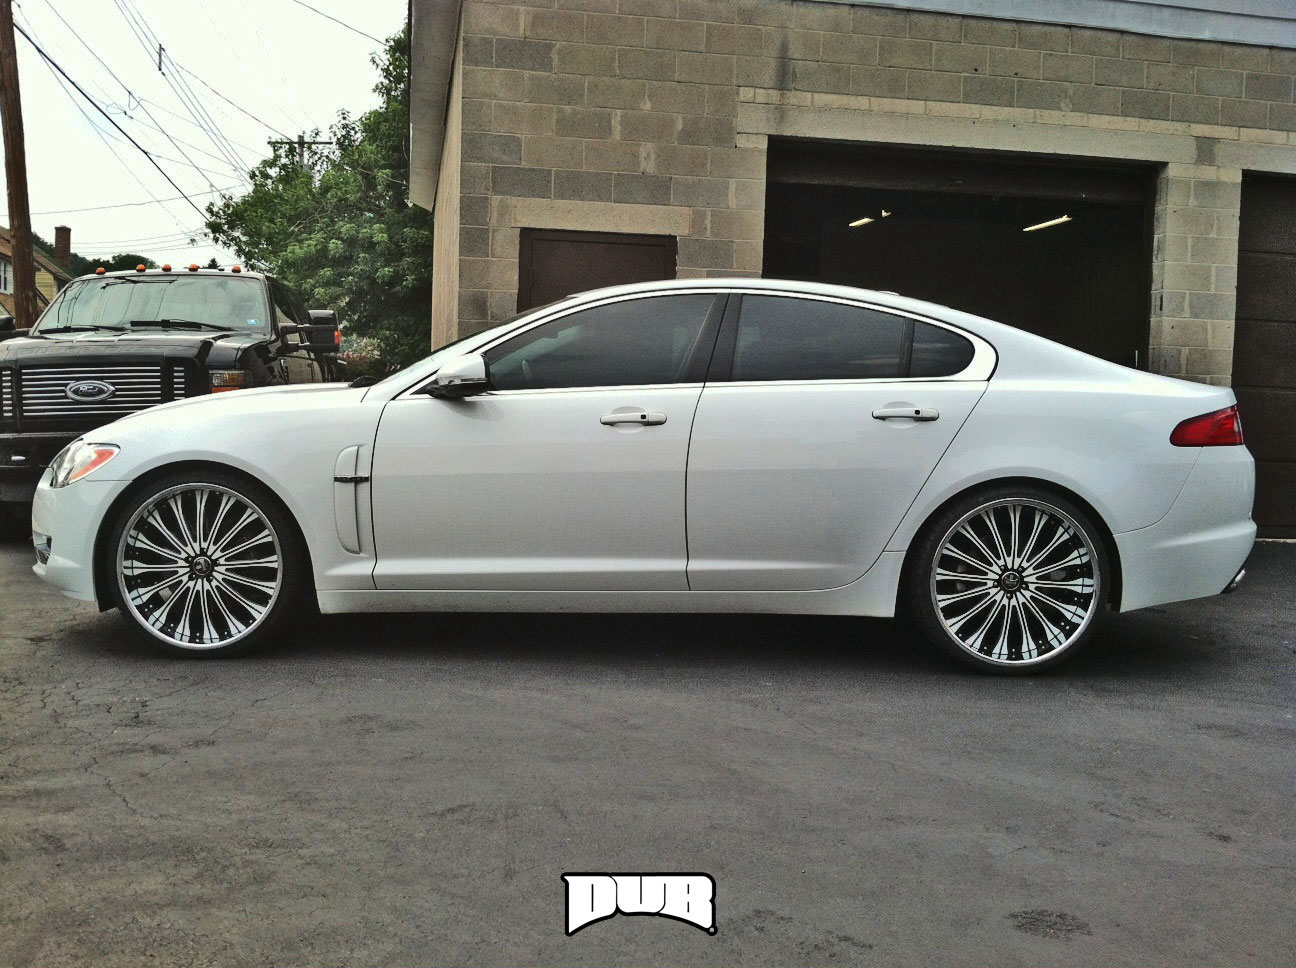 car alloy rims com jaguar suppliers at and aftermarket inch showroom replica alibaba manufacturers wheel